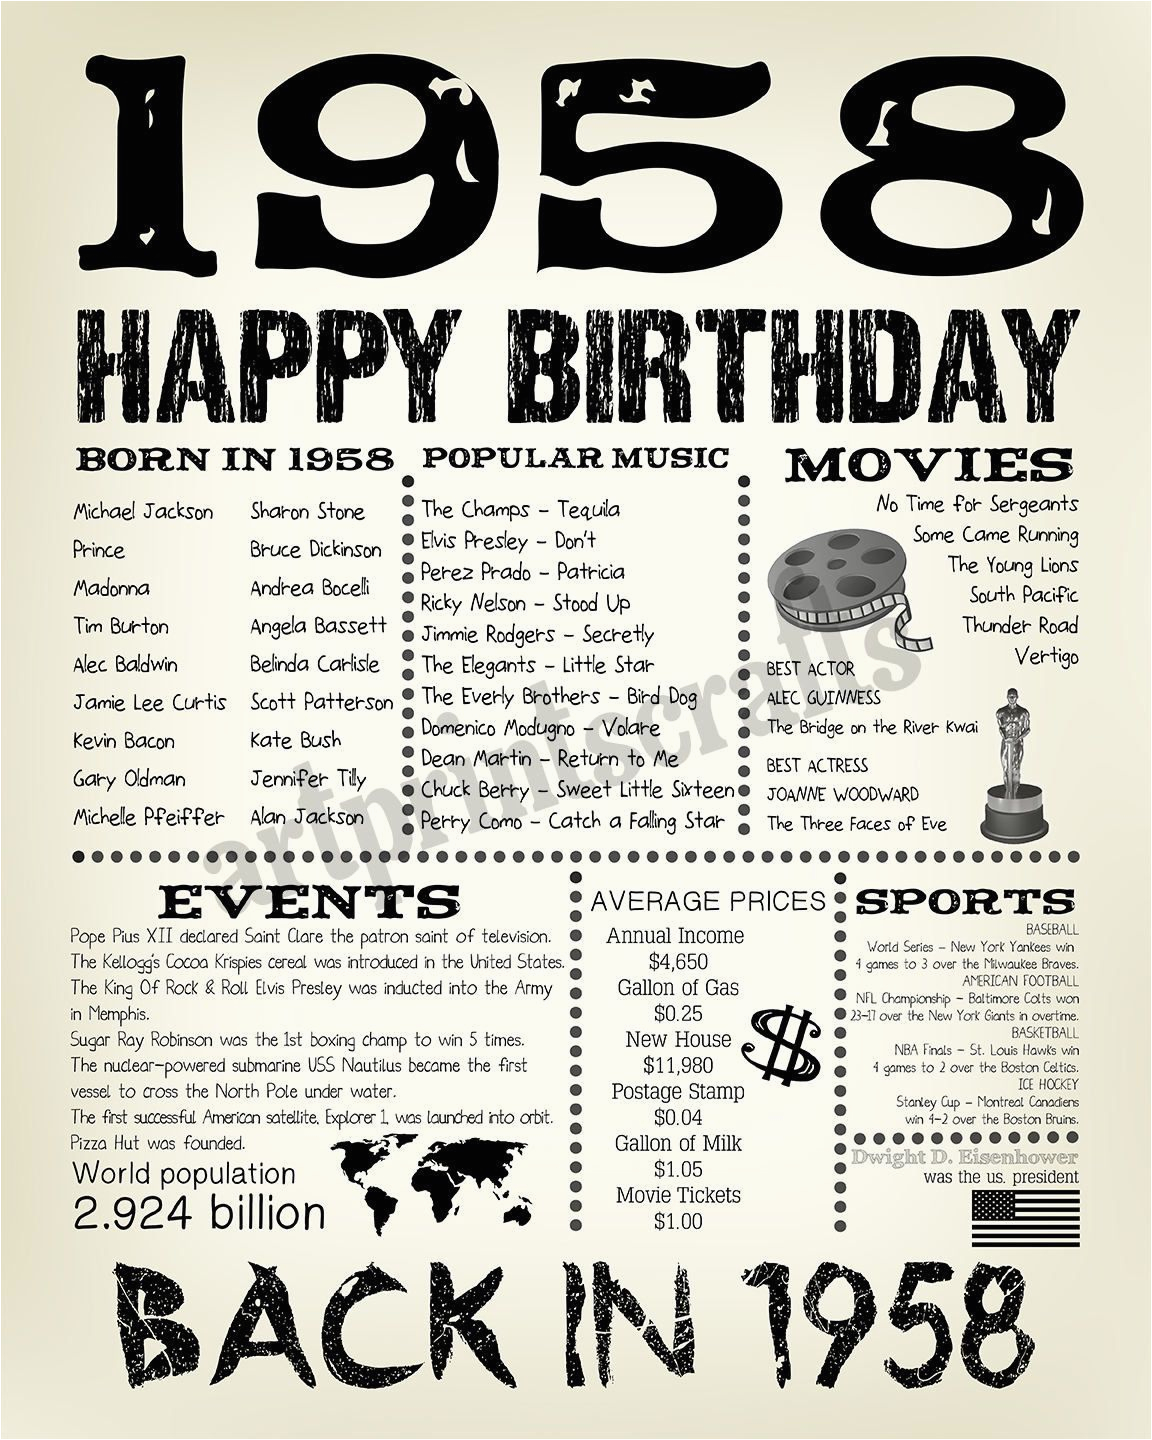 Ideas for 60th Birthday Present for Husband 60th Birthday 1958 Fun Facts 1958 for Husband Gift for